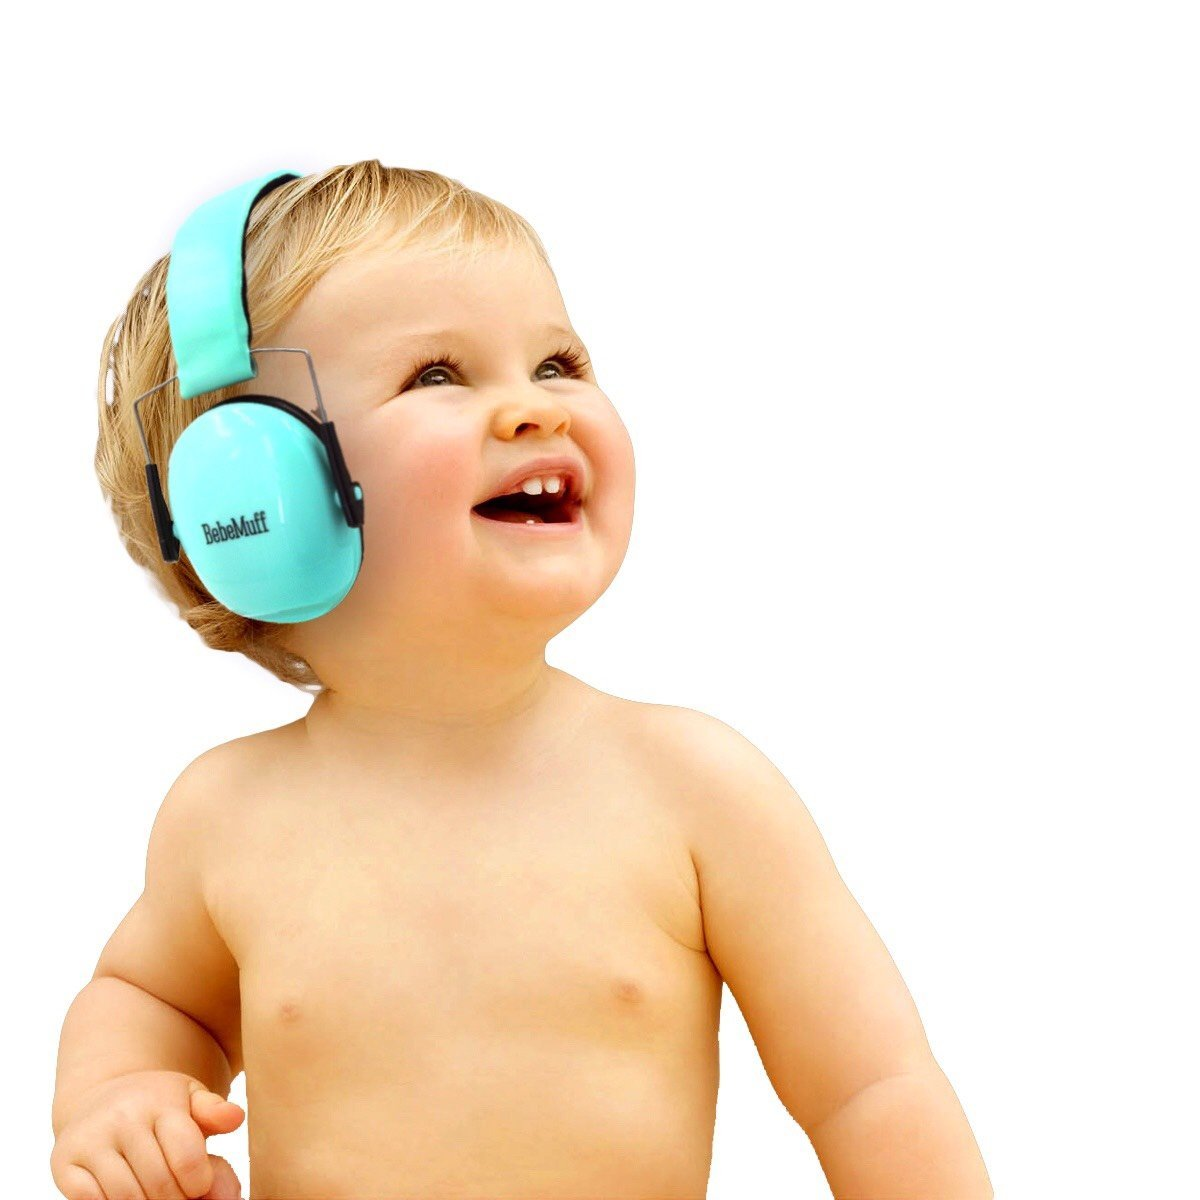 BEBE Muff Hearing Protection - BEST USA Certified Noise Reduction Ear Muffs, Mint, 3 months+ Bebe by Me International